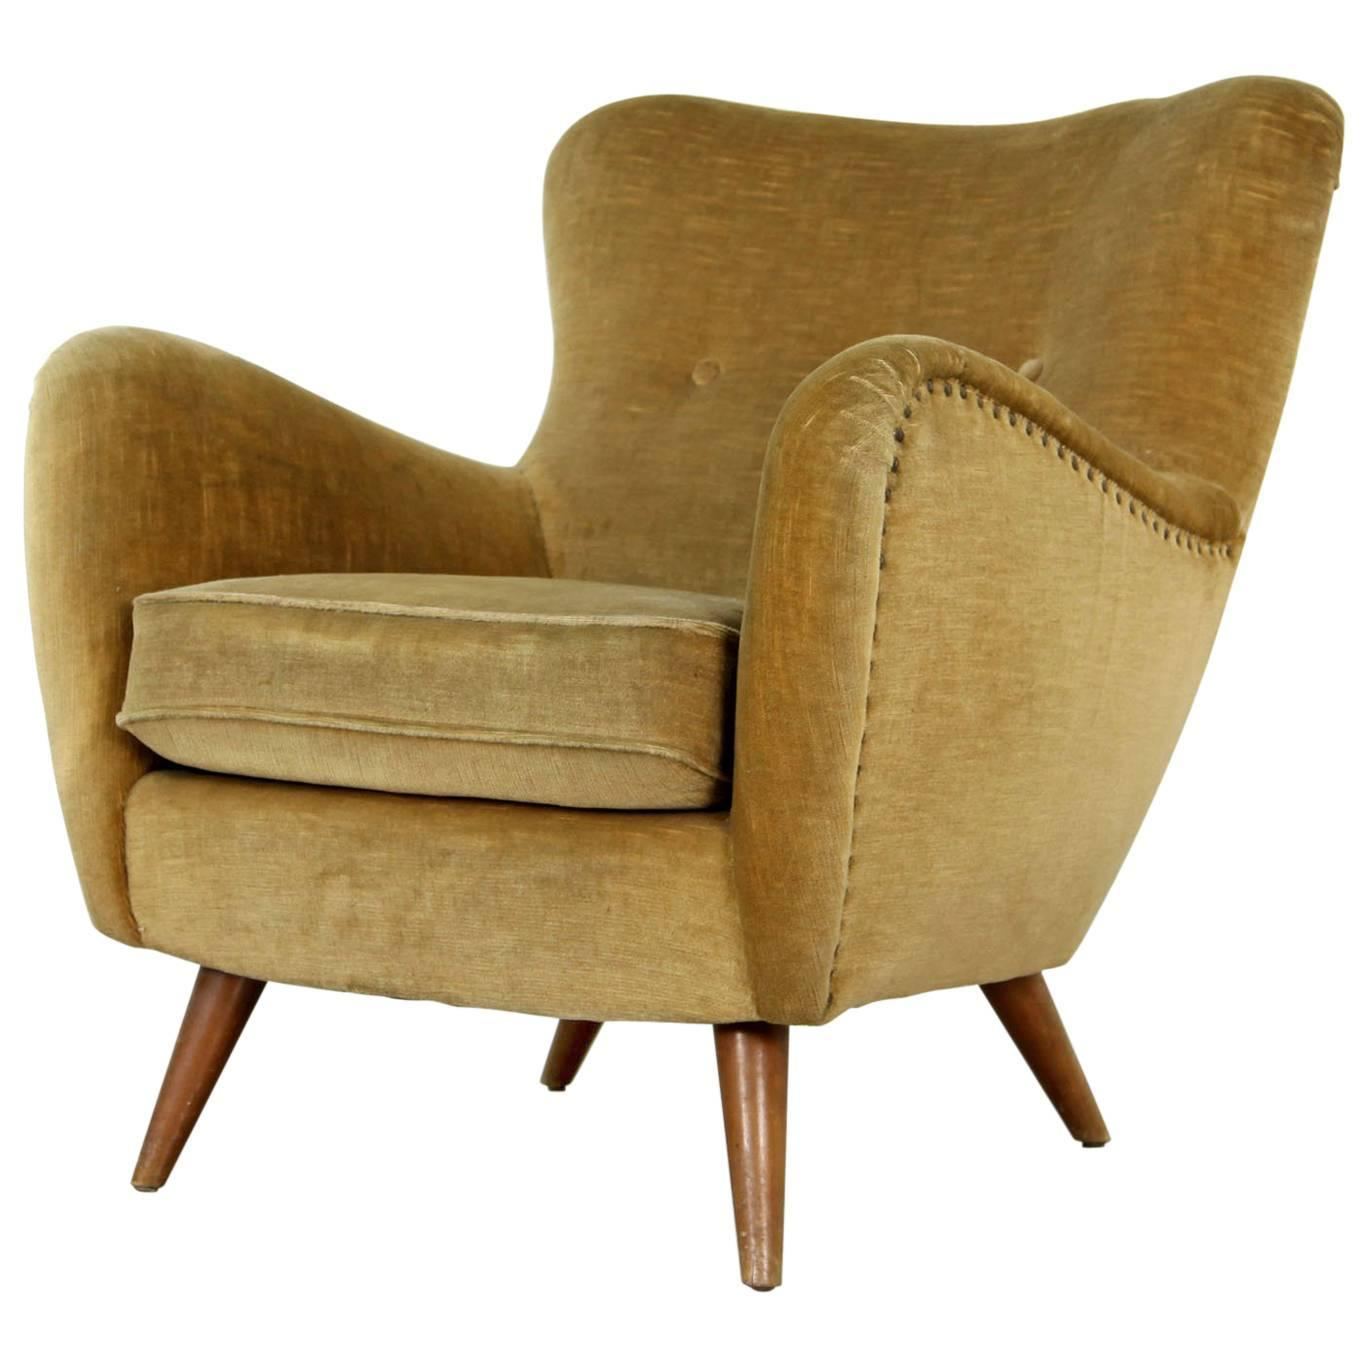 Curved Lounge Chair from the 1940s in the Manner of Otto Schulz For Sale at 1